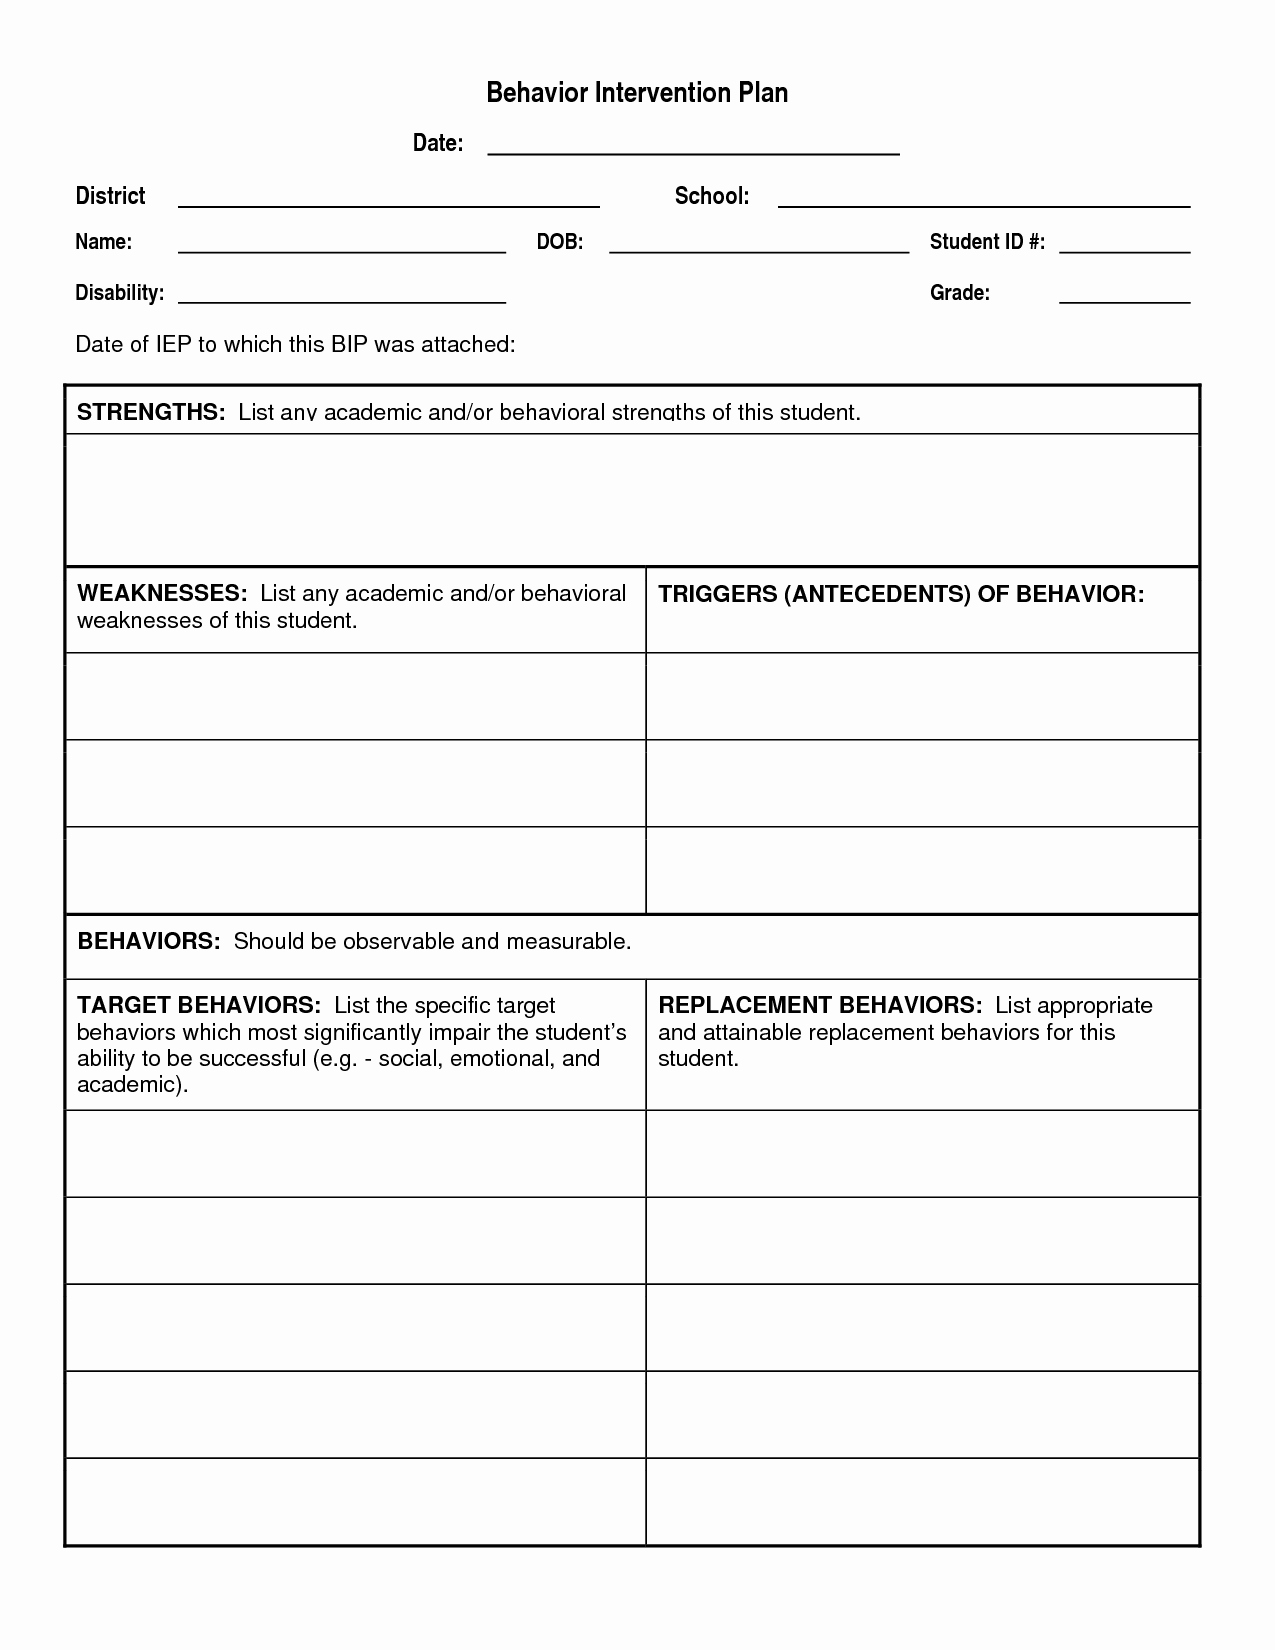 Behavior Intervention Plan Template Elegant Student Intervention Plan to Pin On Pinterest